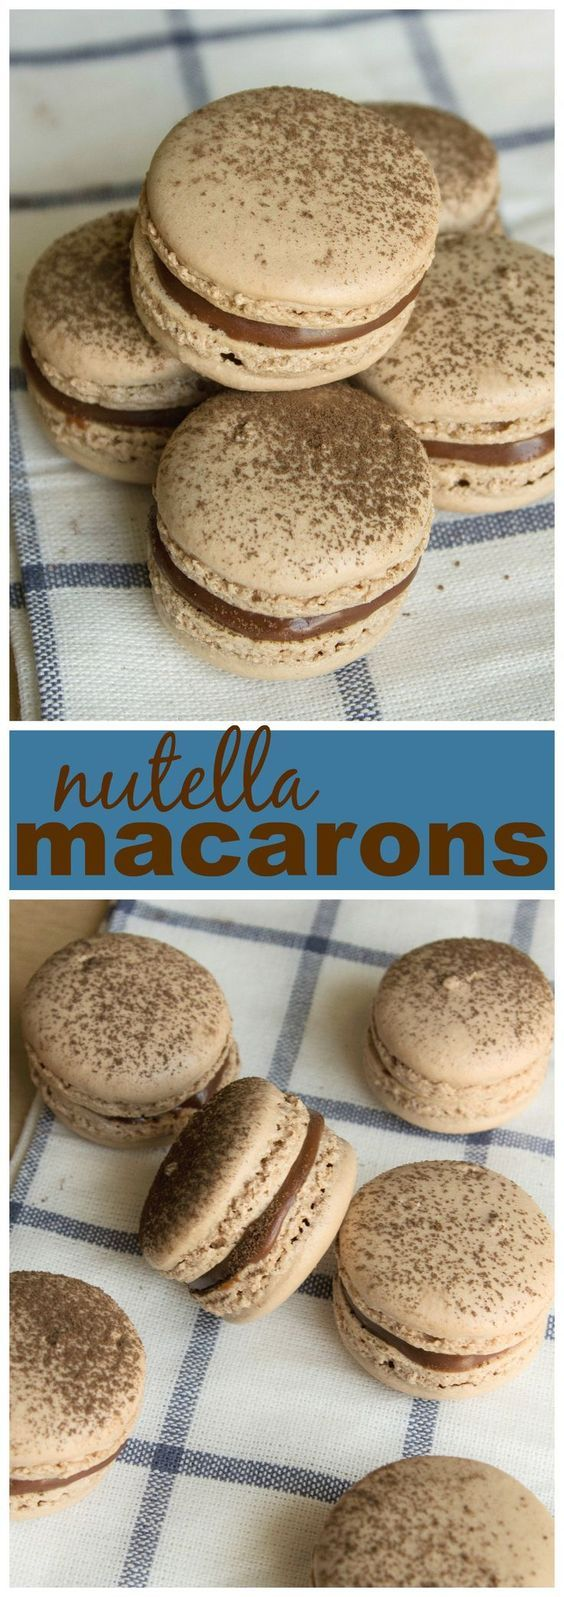 Nutella Macarons More